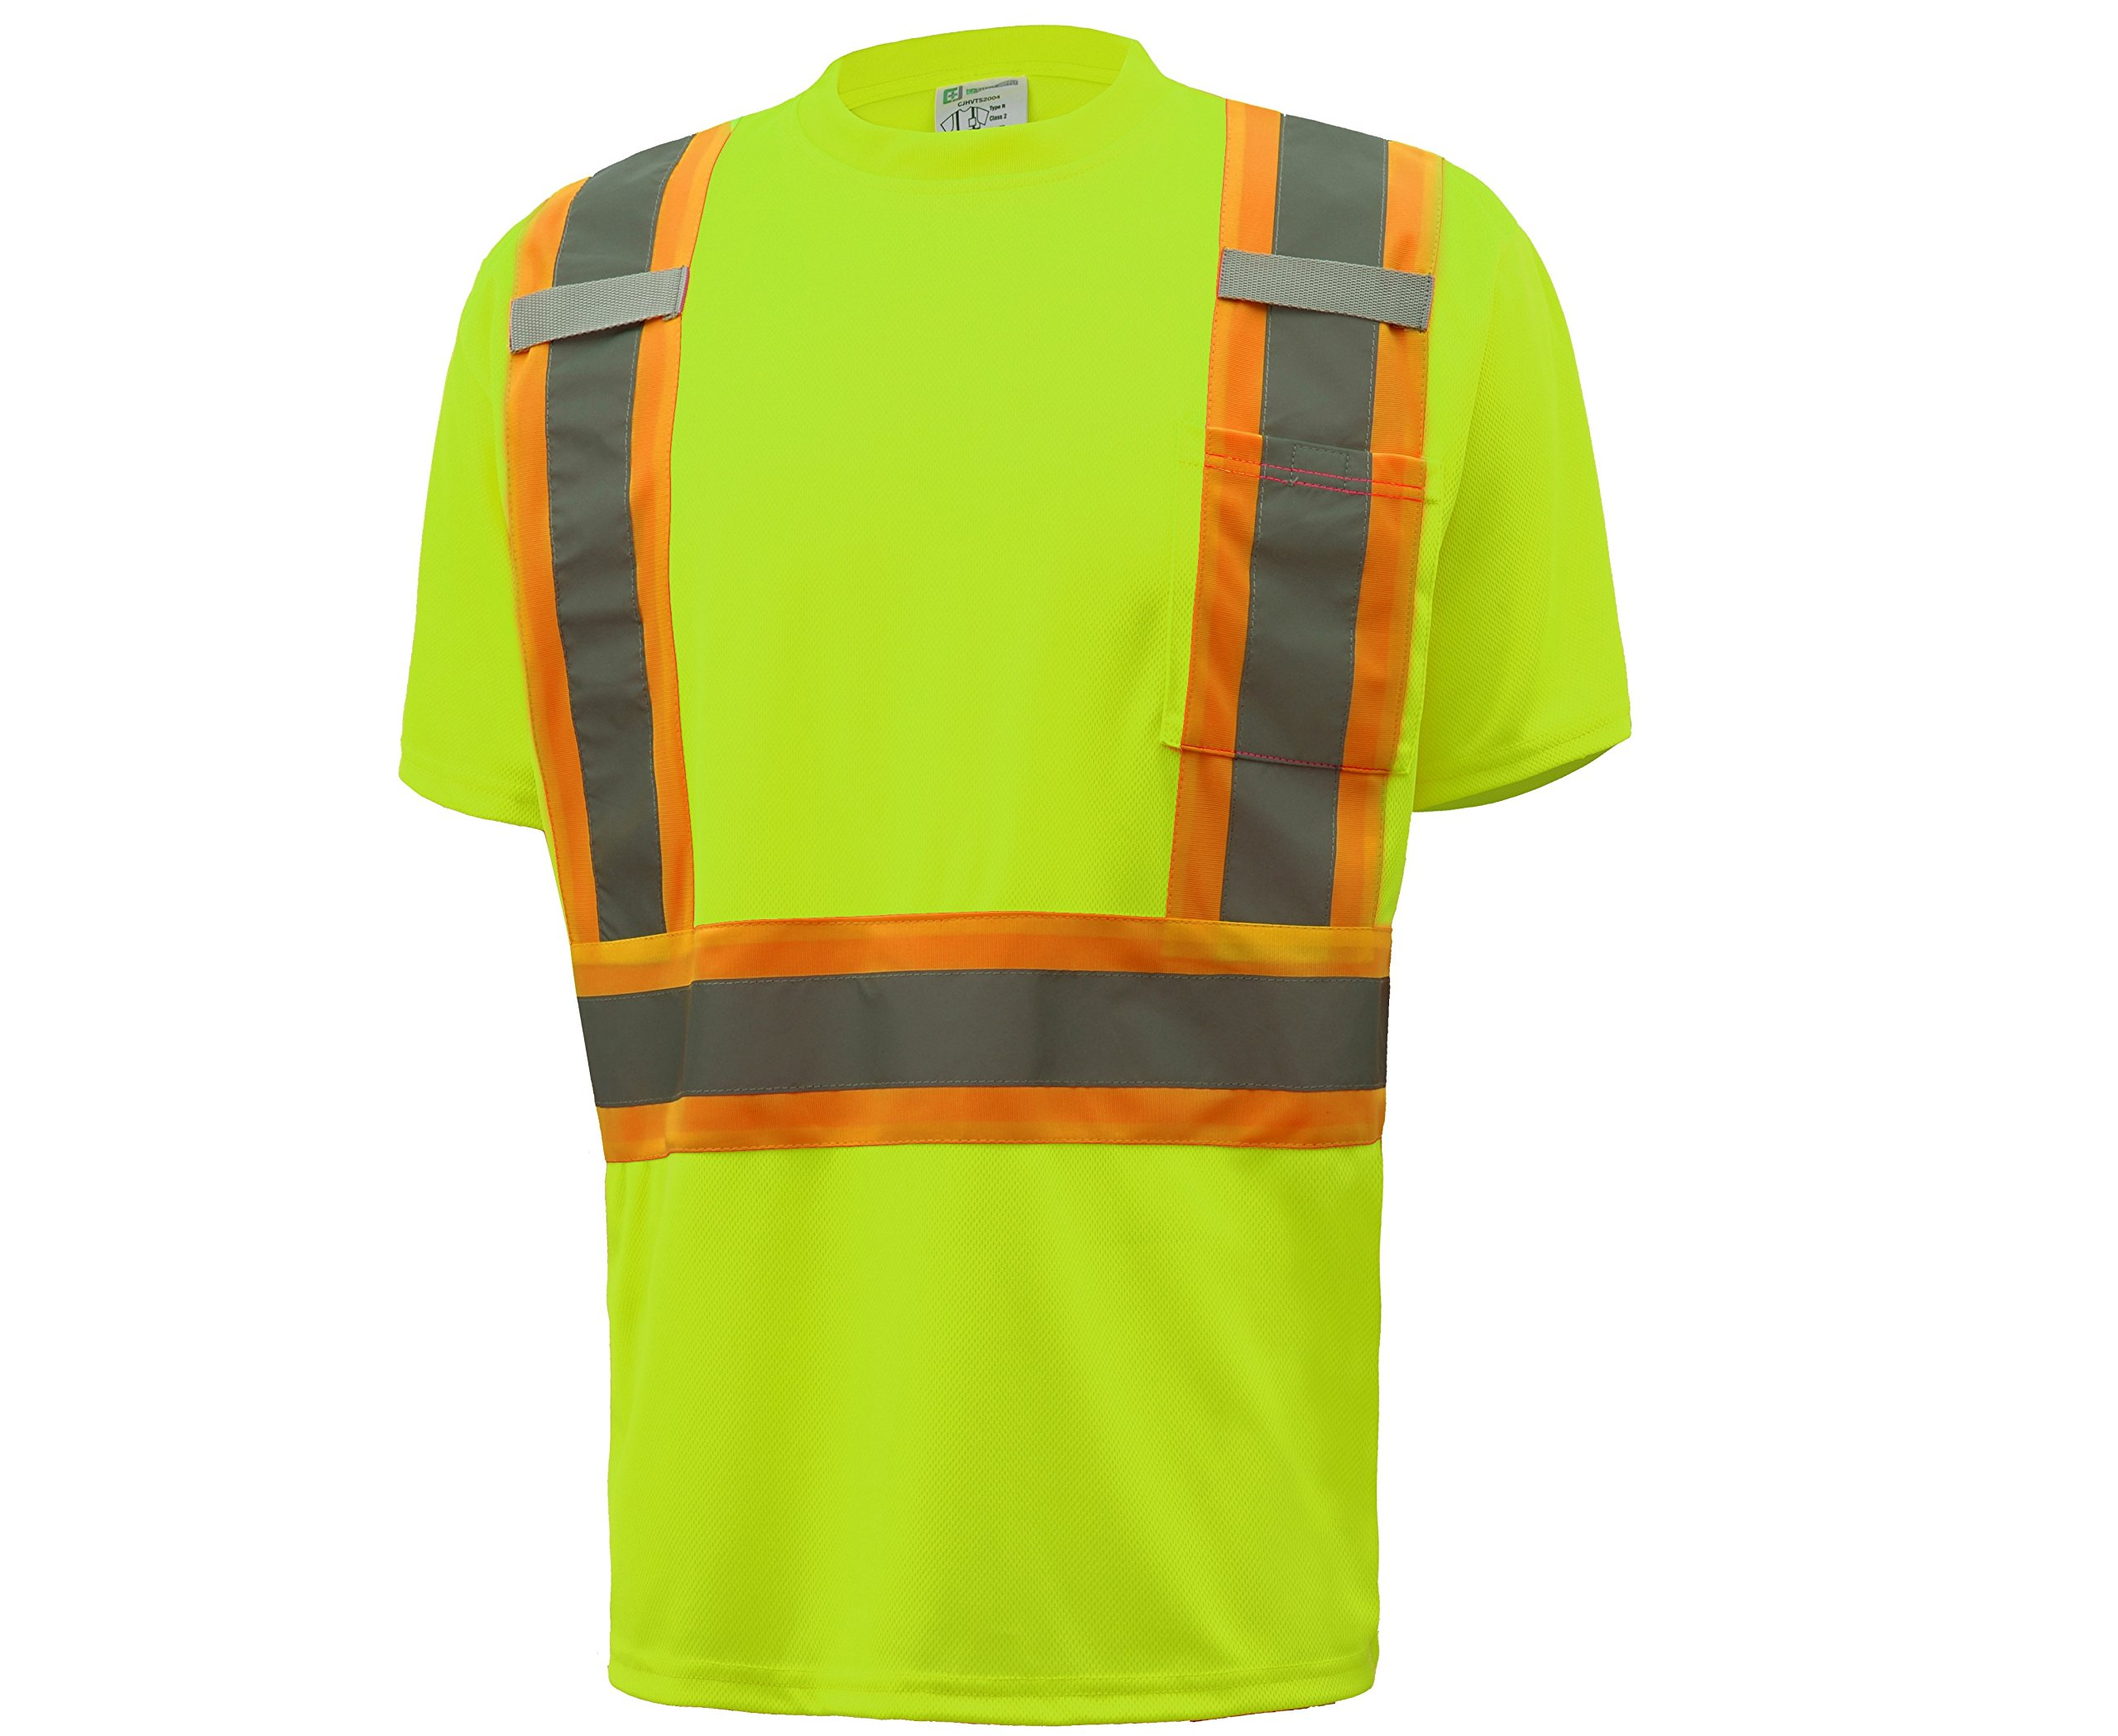 CJ Safety CJHVTS2004 ANSI Class 2 Two-tone High Vis Short Sleeve Safety Shirt Moisture Wicking Mesh (Medium, Green)